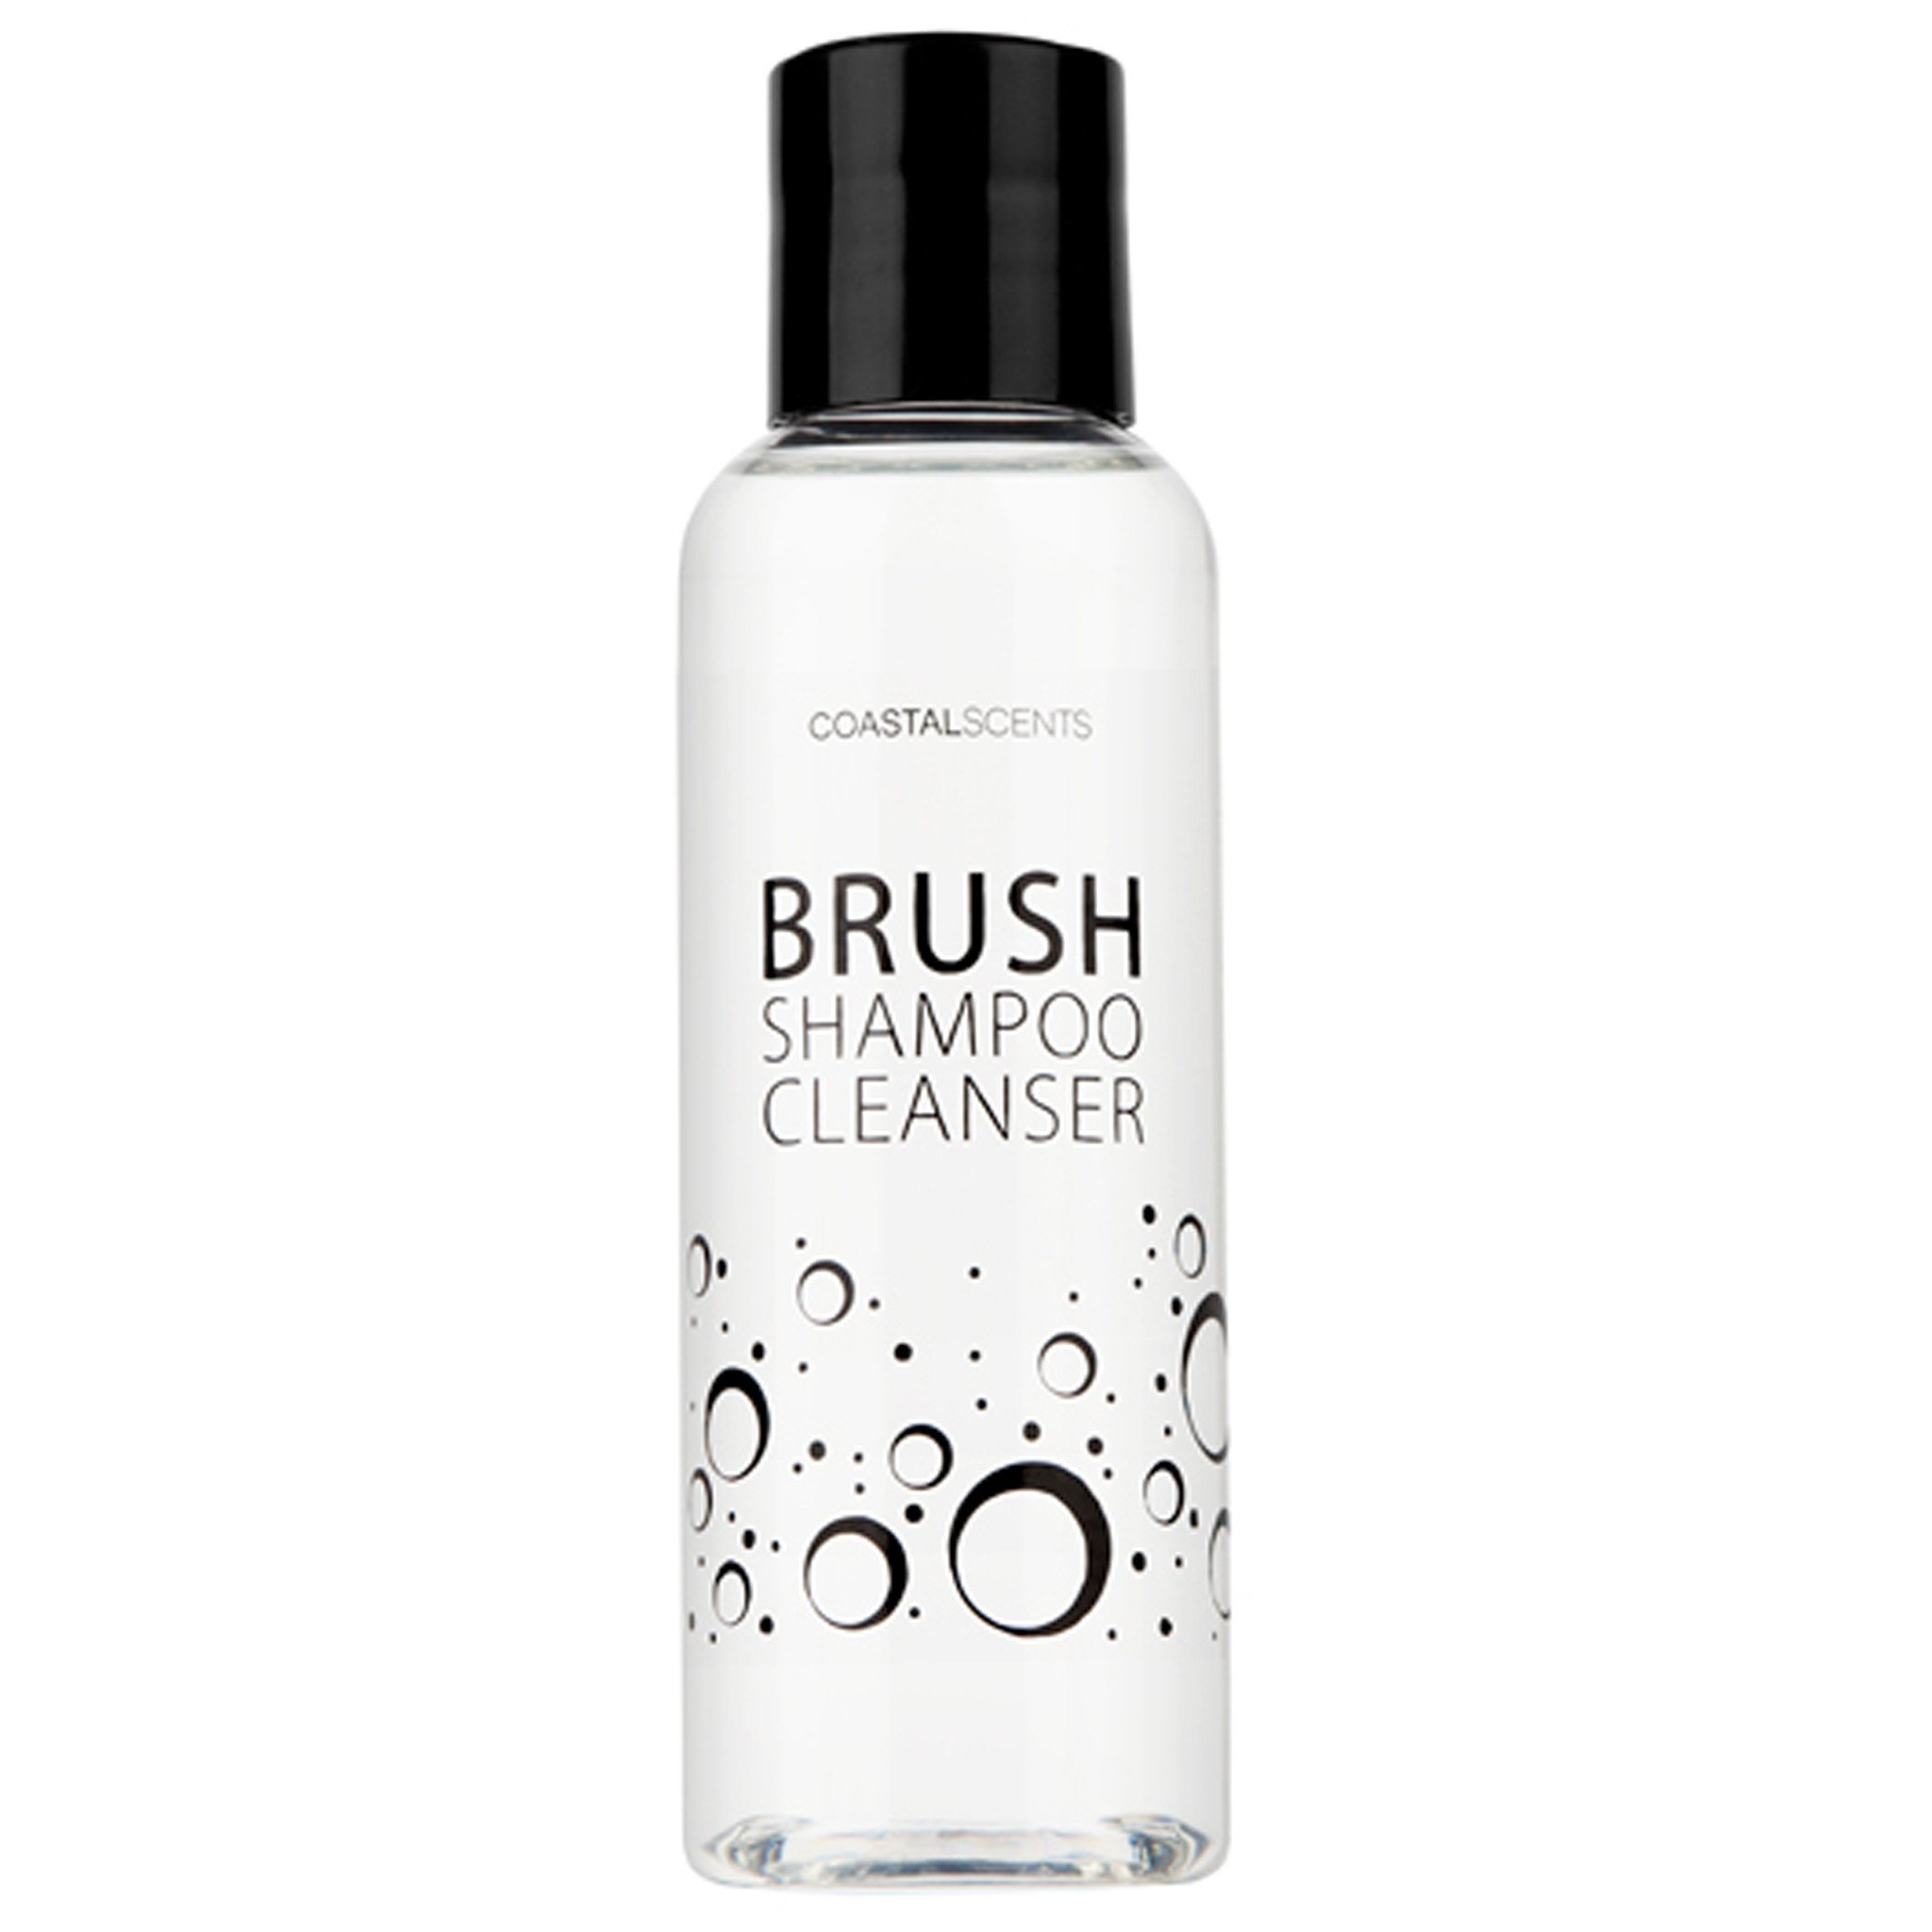 Brush Shampoo Cleanser Image